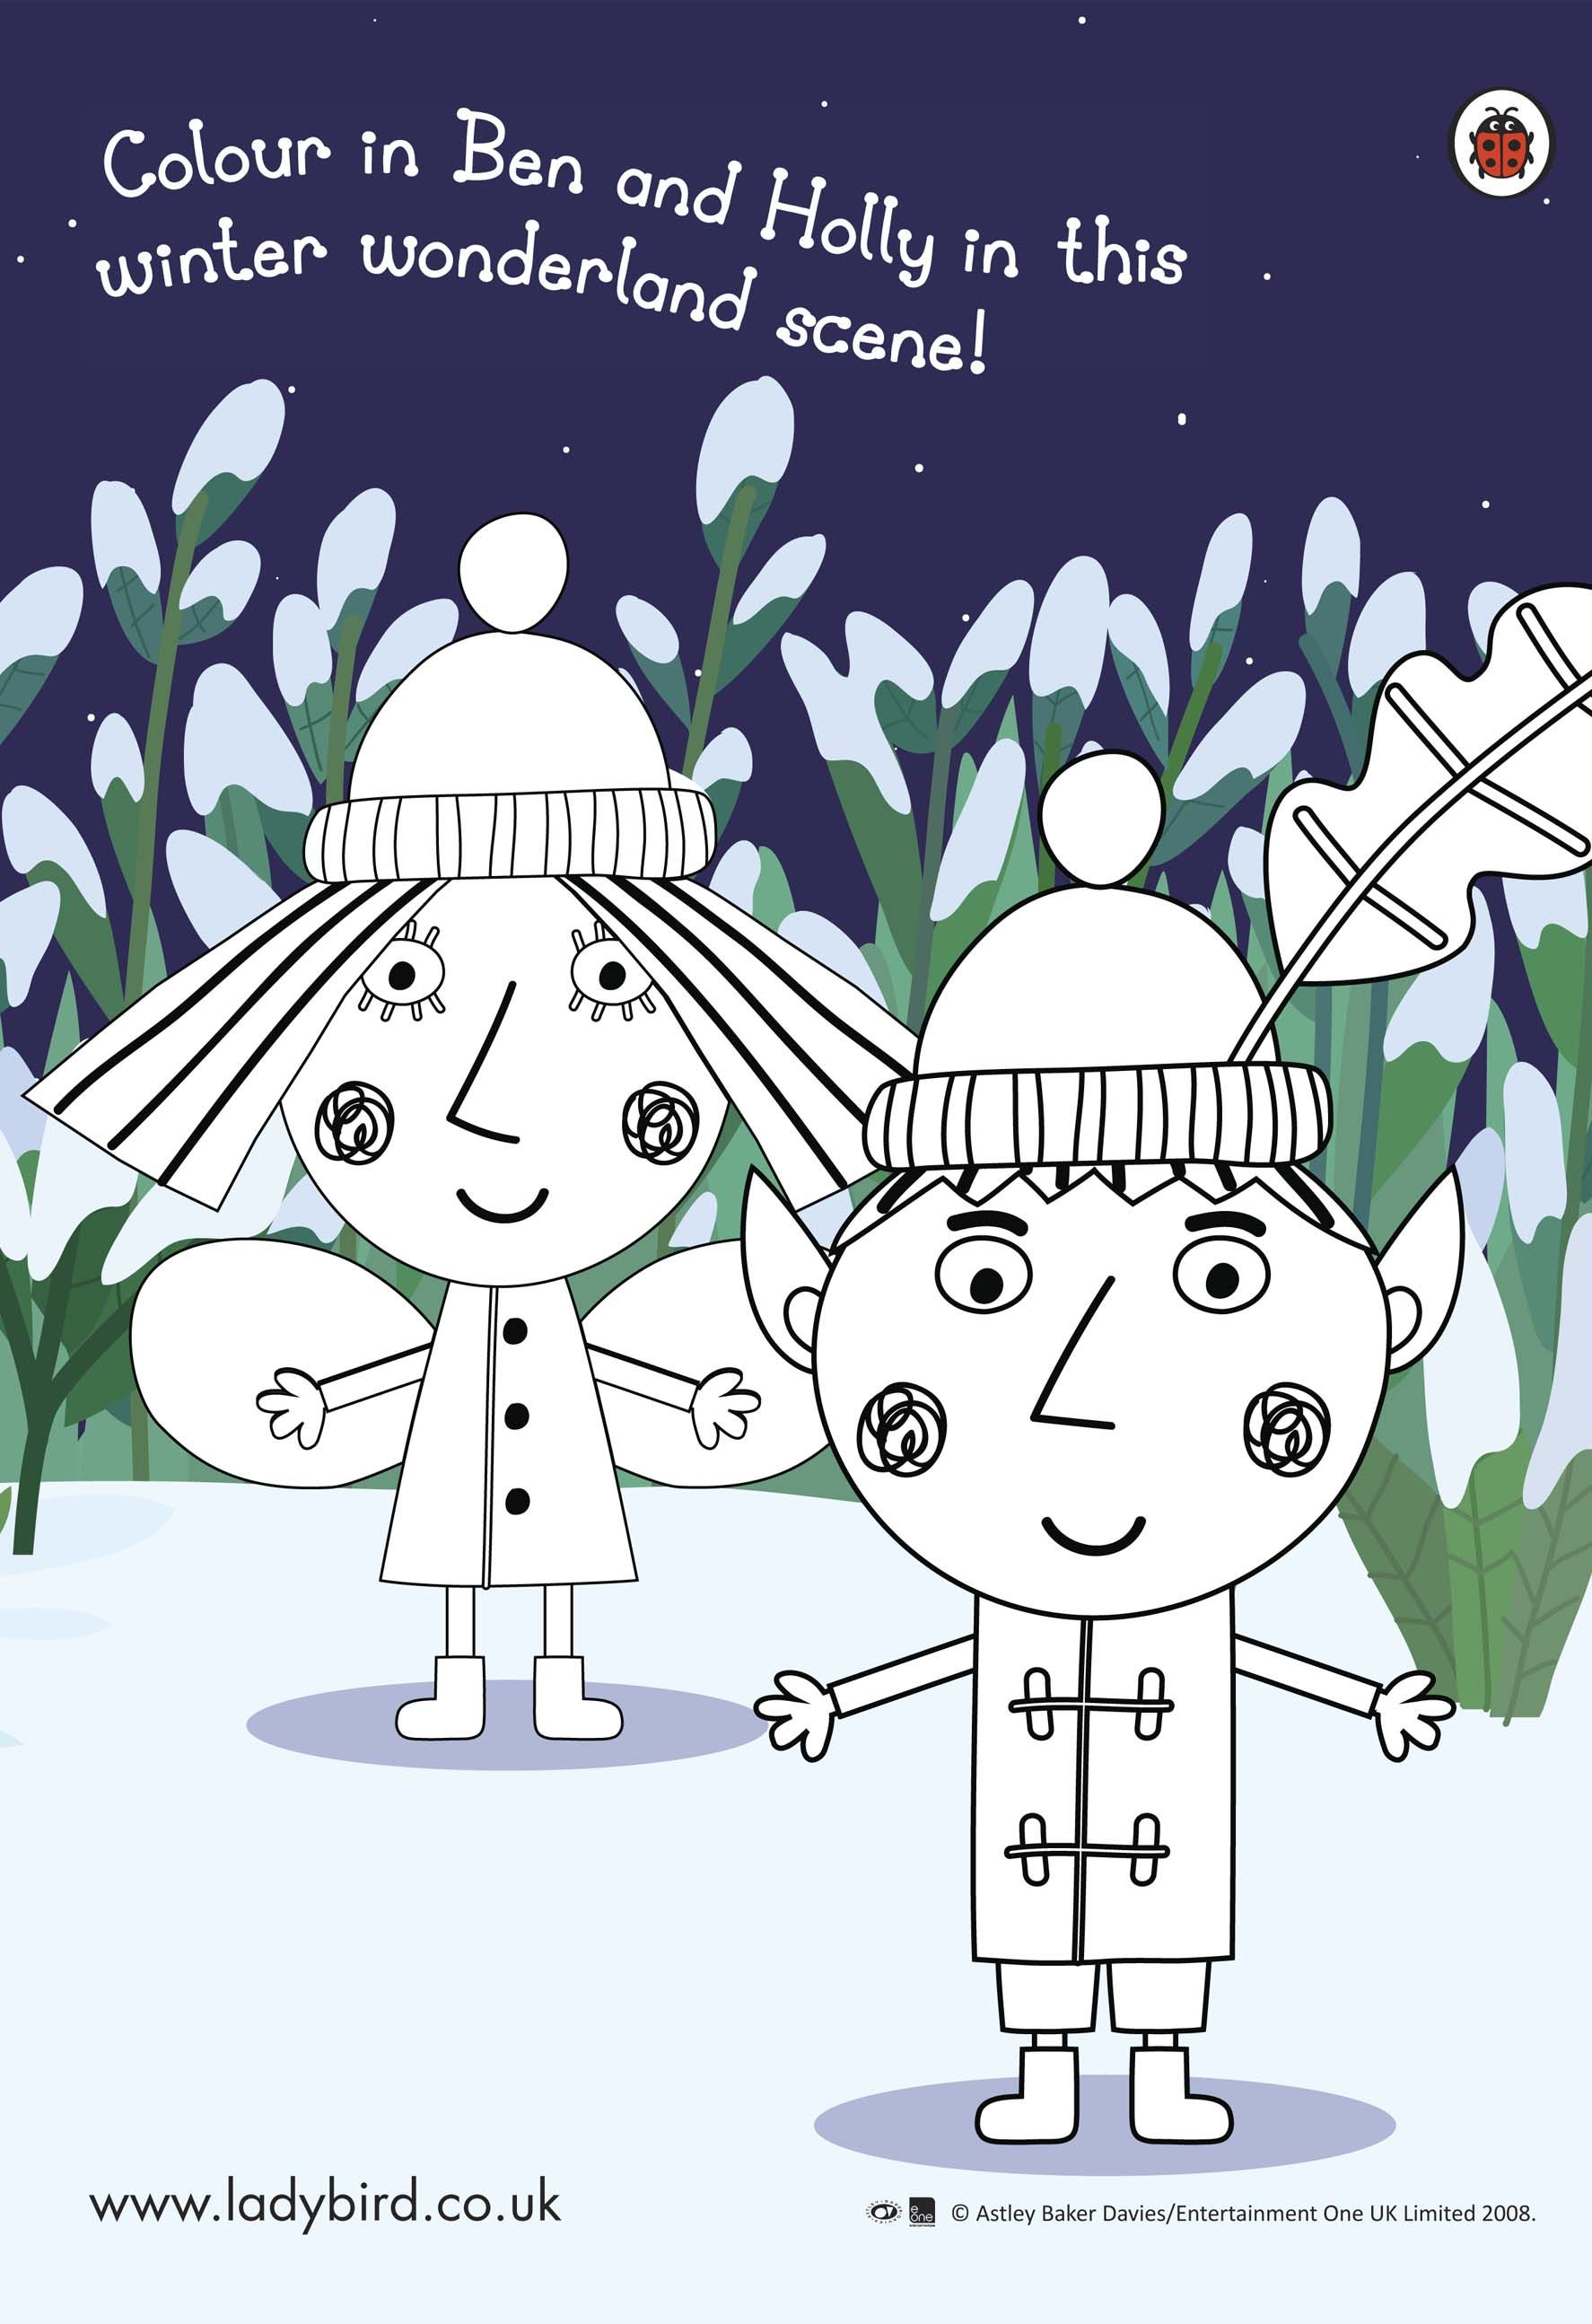 Benhollyactcol897570, ben and holly coloring, winter